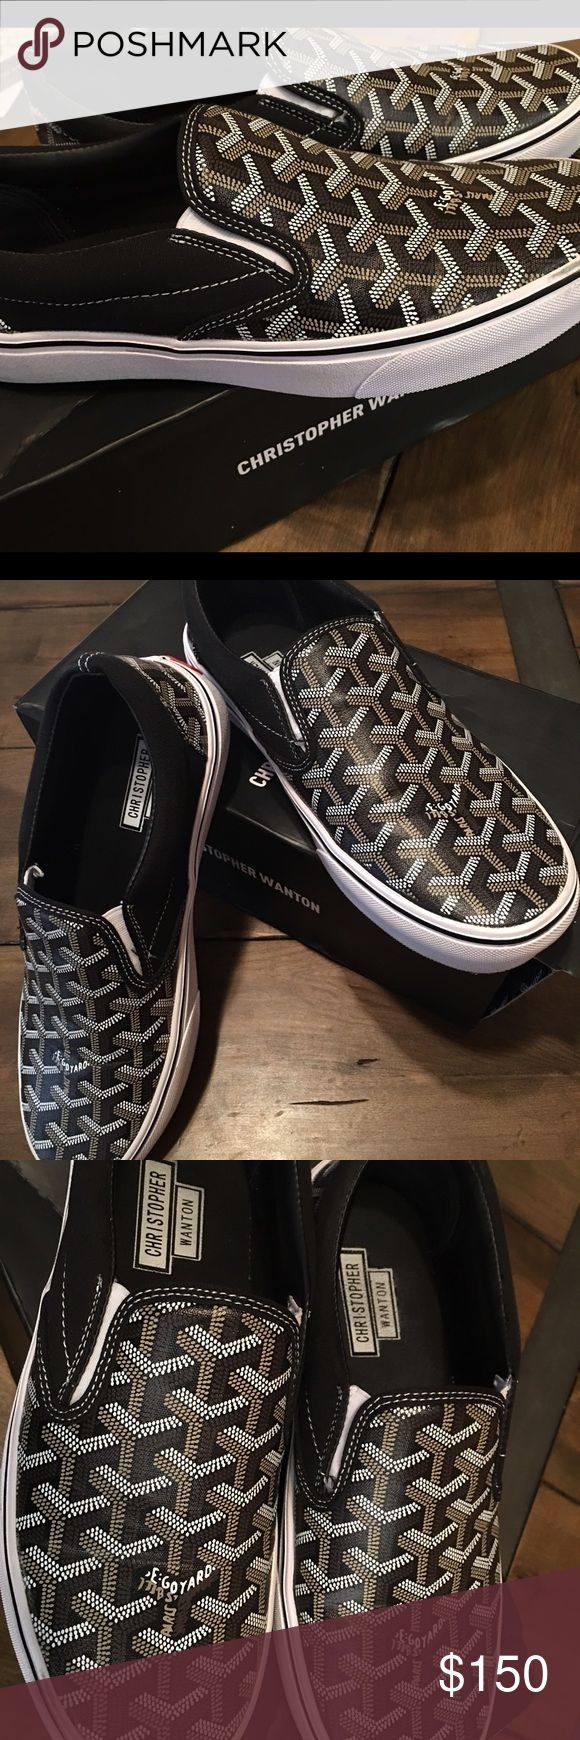 Goyard Vans Christopher Wanton Used ones Goyard Vans unisex 8.5 Mens 10 Womens. Comes with original box Goyard Shoes Sneakers